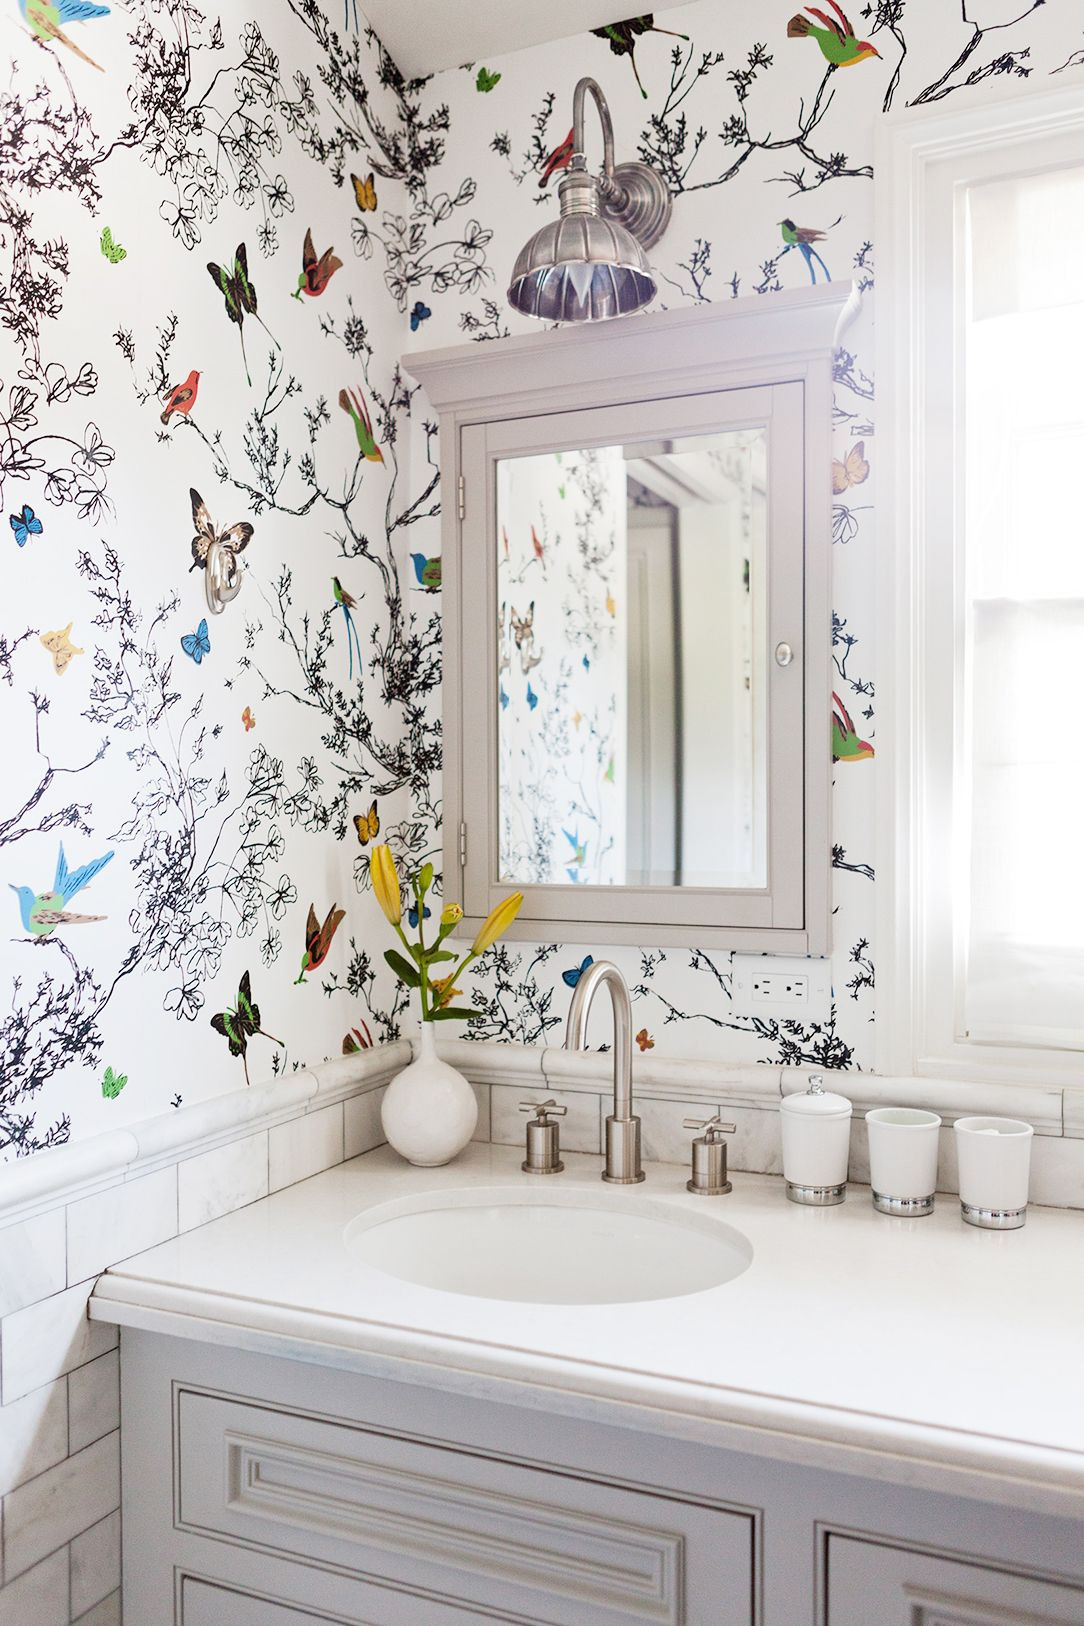 Butterfly Bathroom Decor Luxury This Insanely Chic L A Home Will Give You Goosebumps